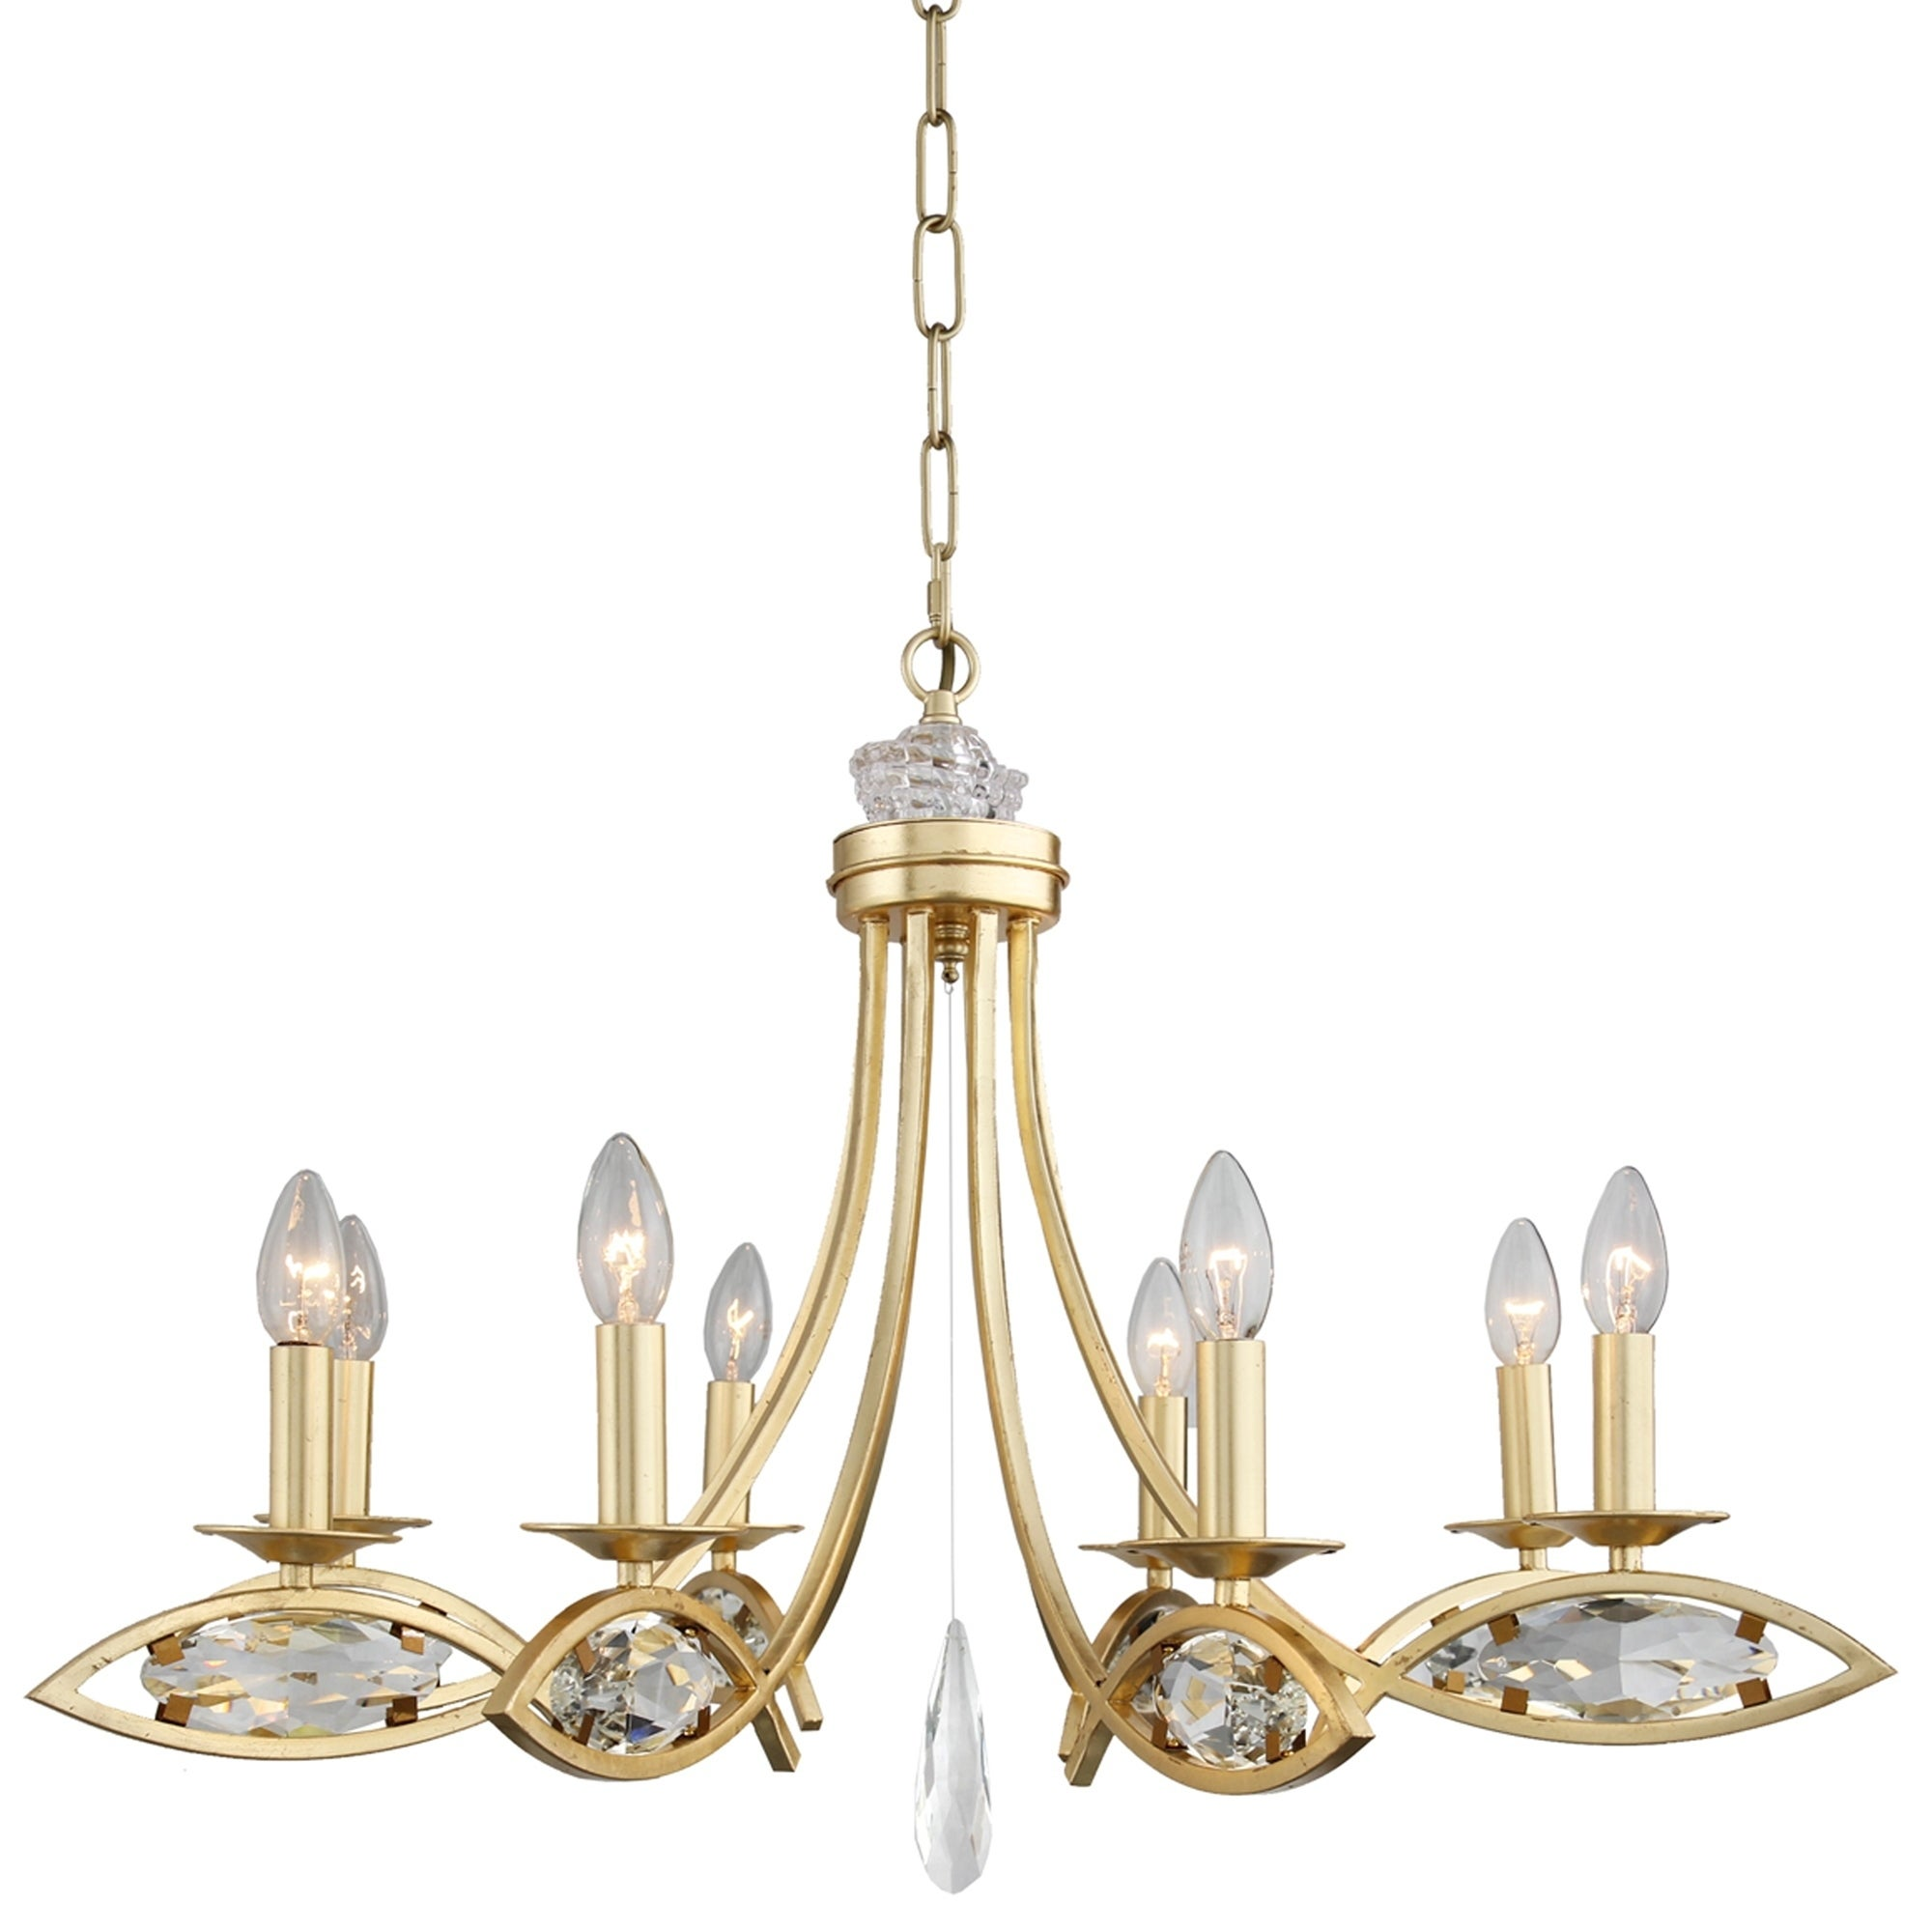 8 Light Candle Style Chandelier In Gold Finish And Clear Crystals Overstock 30580731